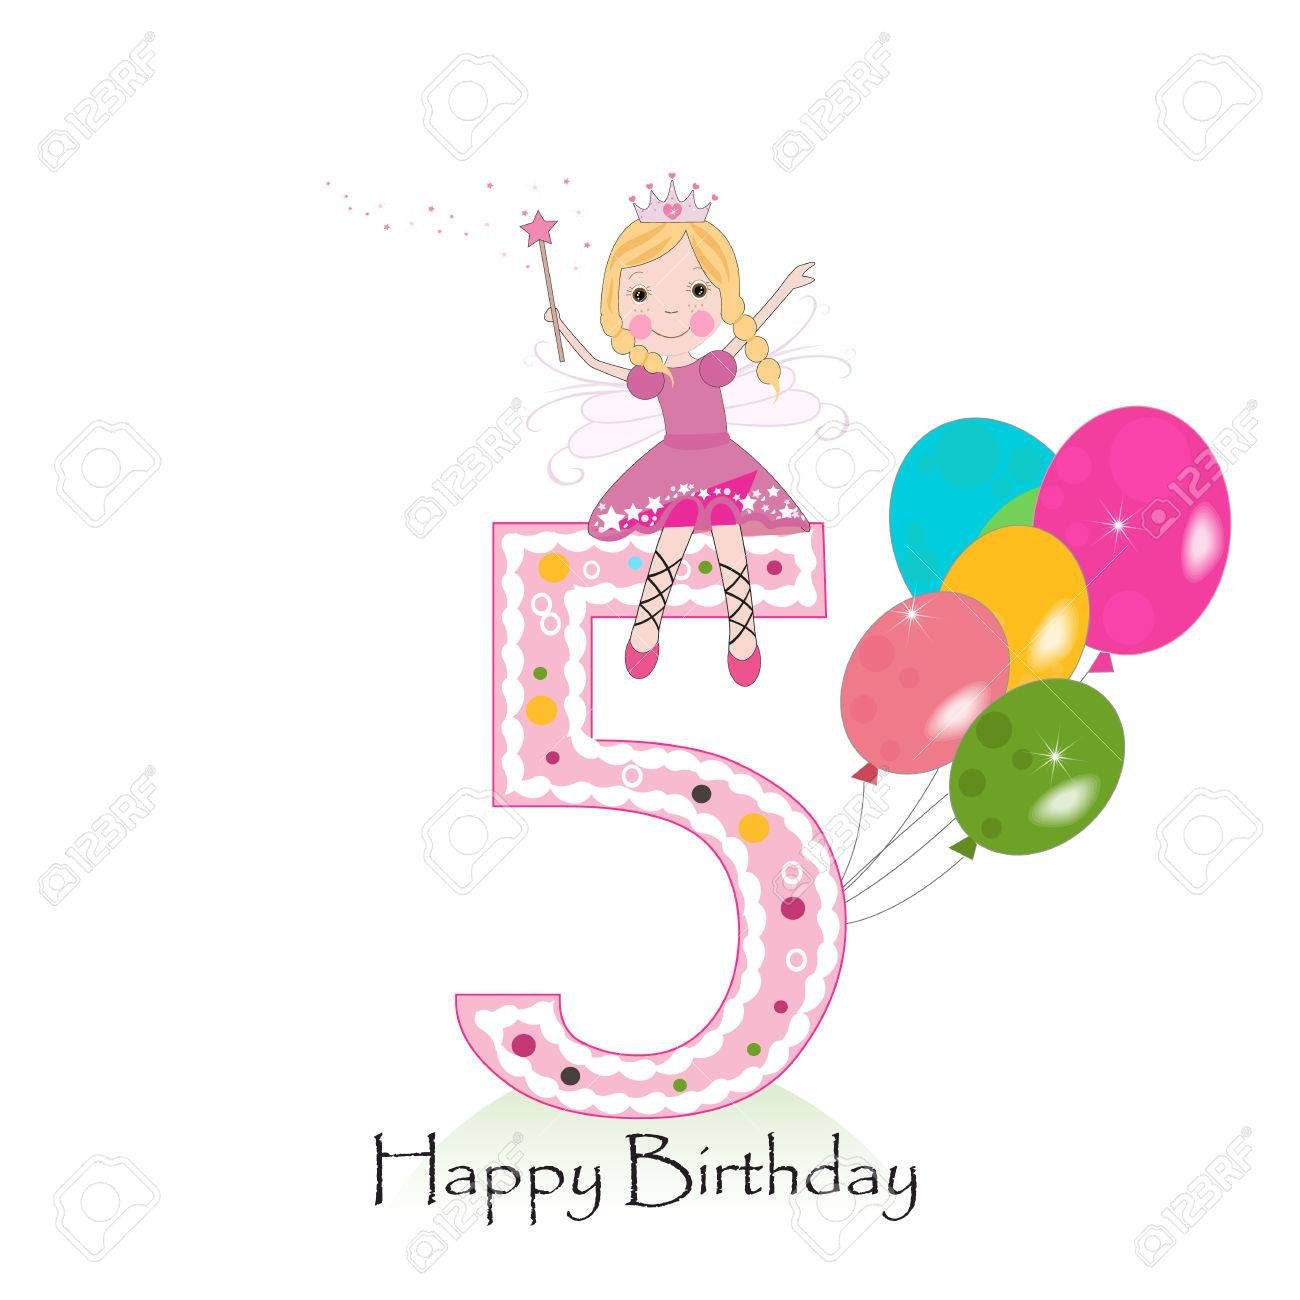 Happy Fifth Birthday Greeting Card With Fairy Tale Royalty Free Cliparts Vectors And Stock Illustration Image 71904951